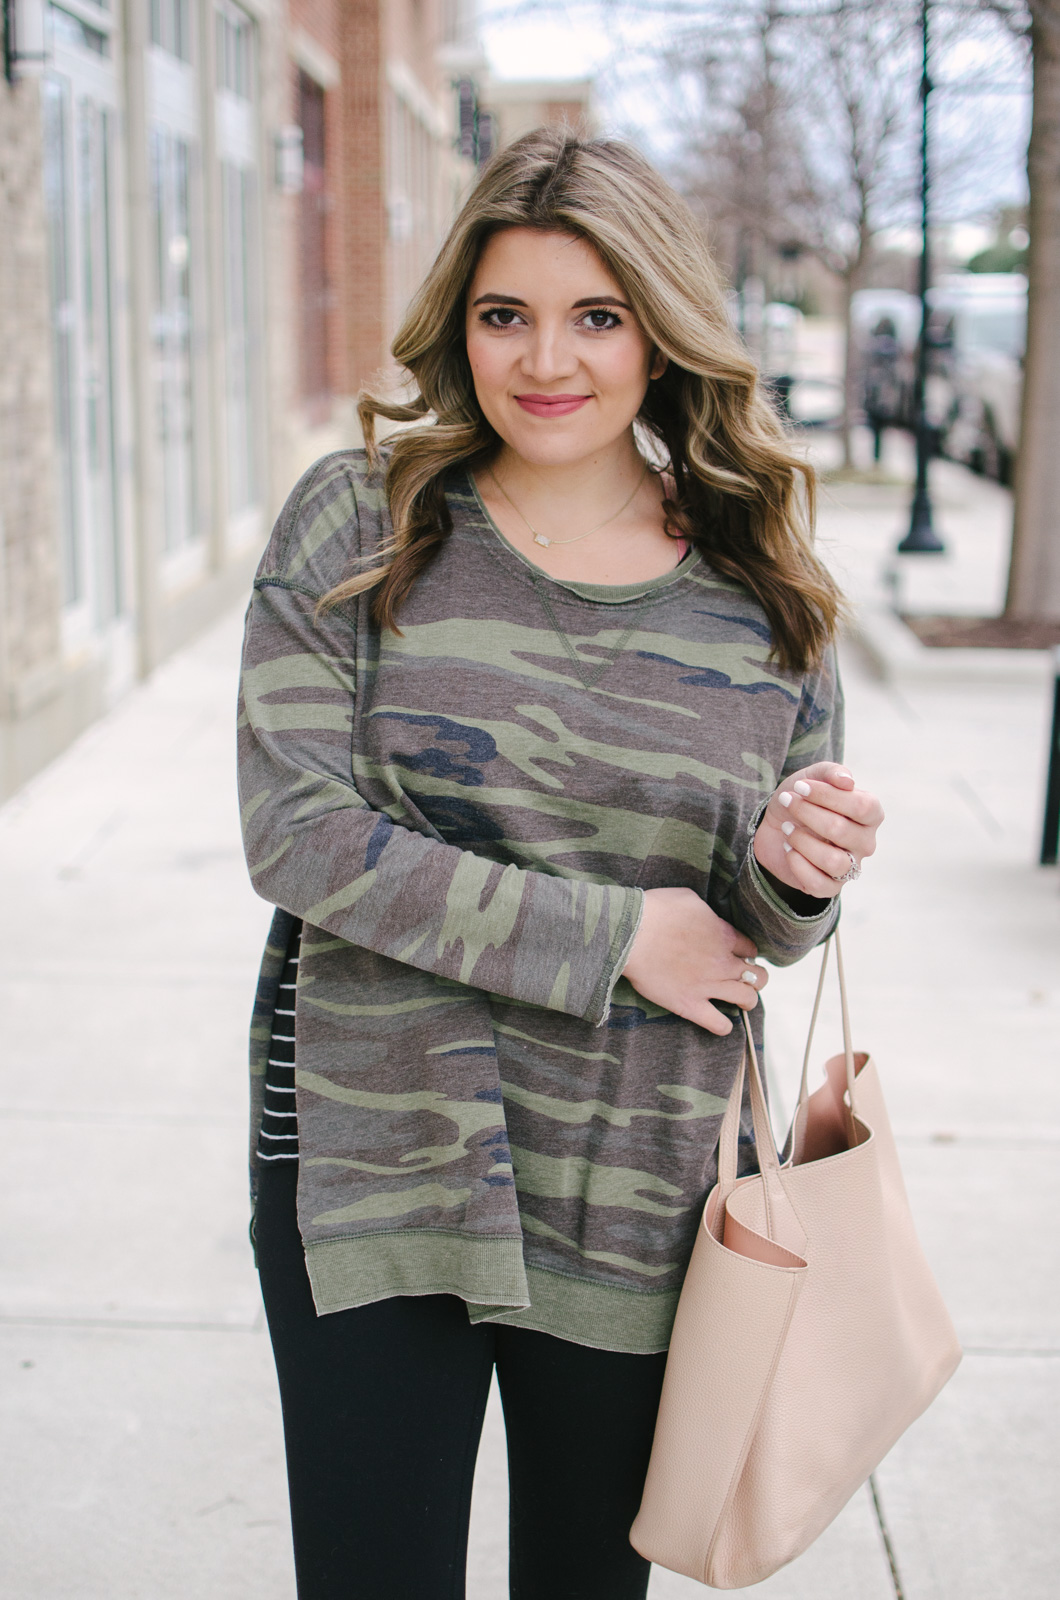 camo pullover outfit - my current fav leggings outfit for winter | Get all the outfit details or see more cute leggings outfits at bylaurenm.com!